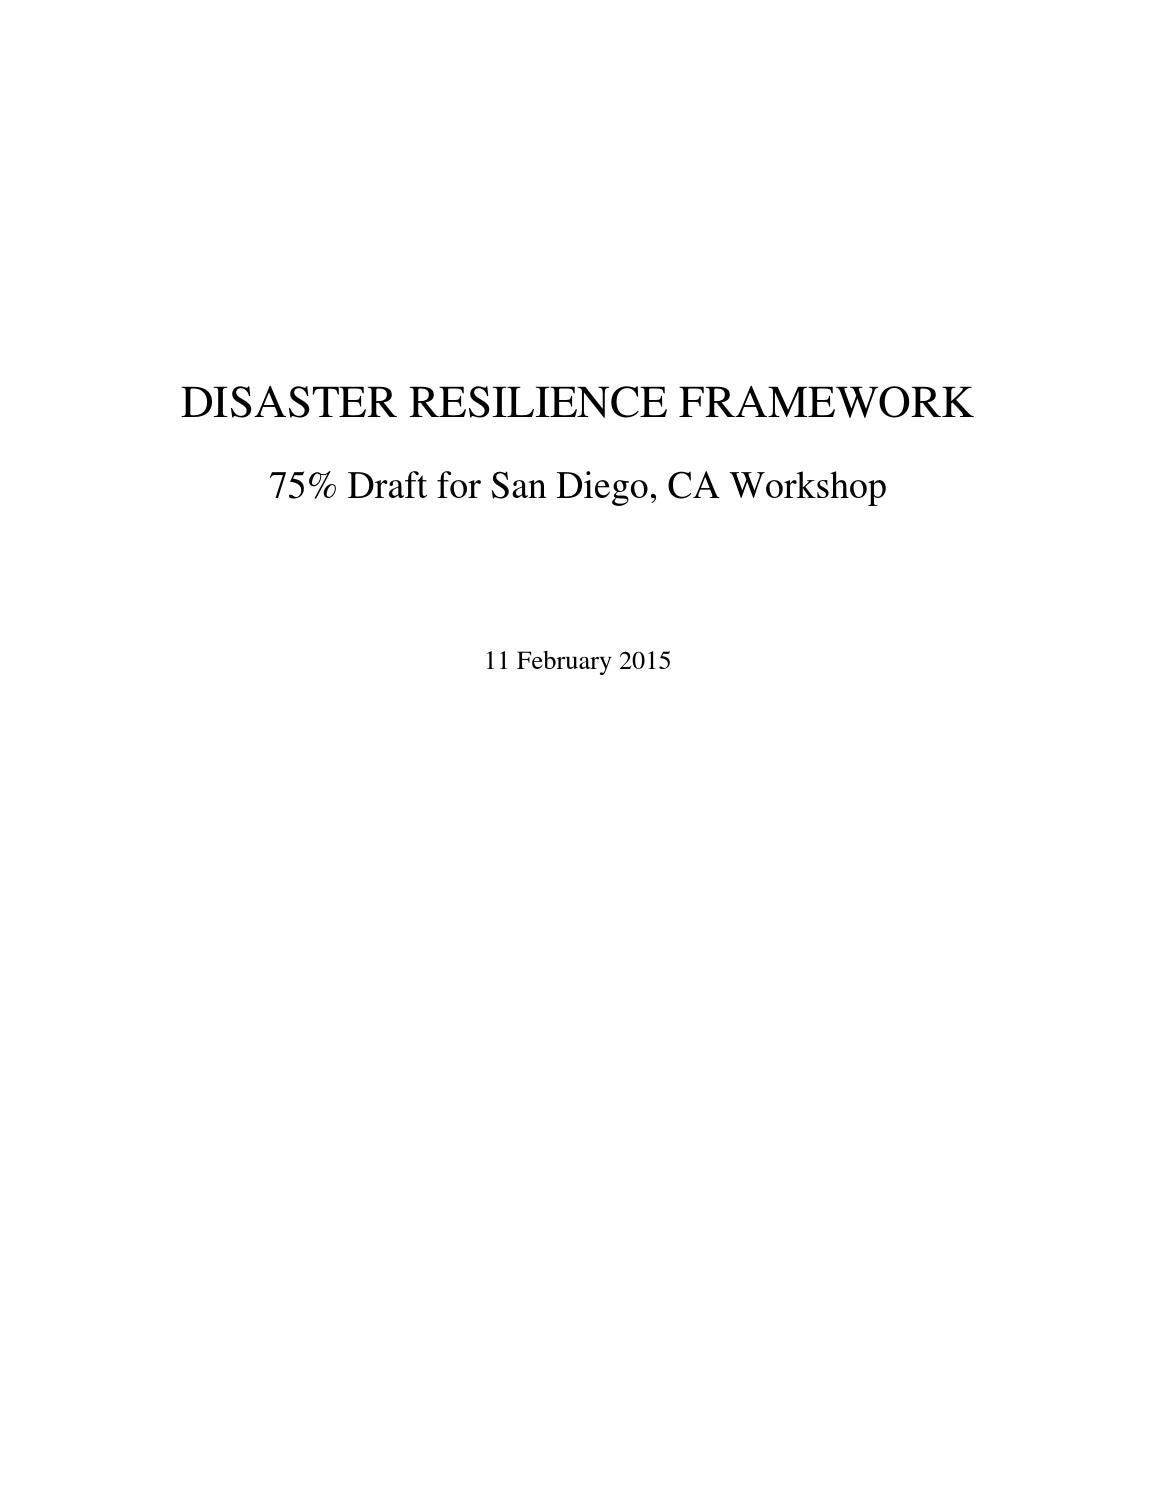 Disaster Resilience Framework Document 75 By Emilio Iannarelli Issuu Blocks To Define The Fuel Flow Properties Of Powersubsystem